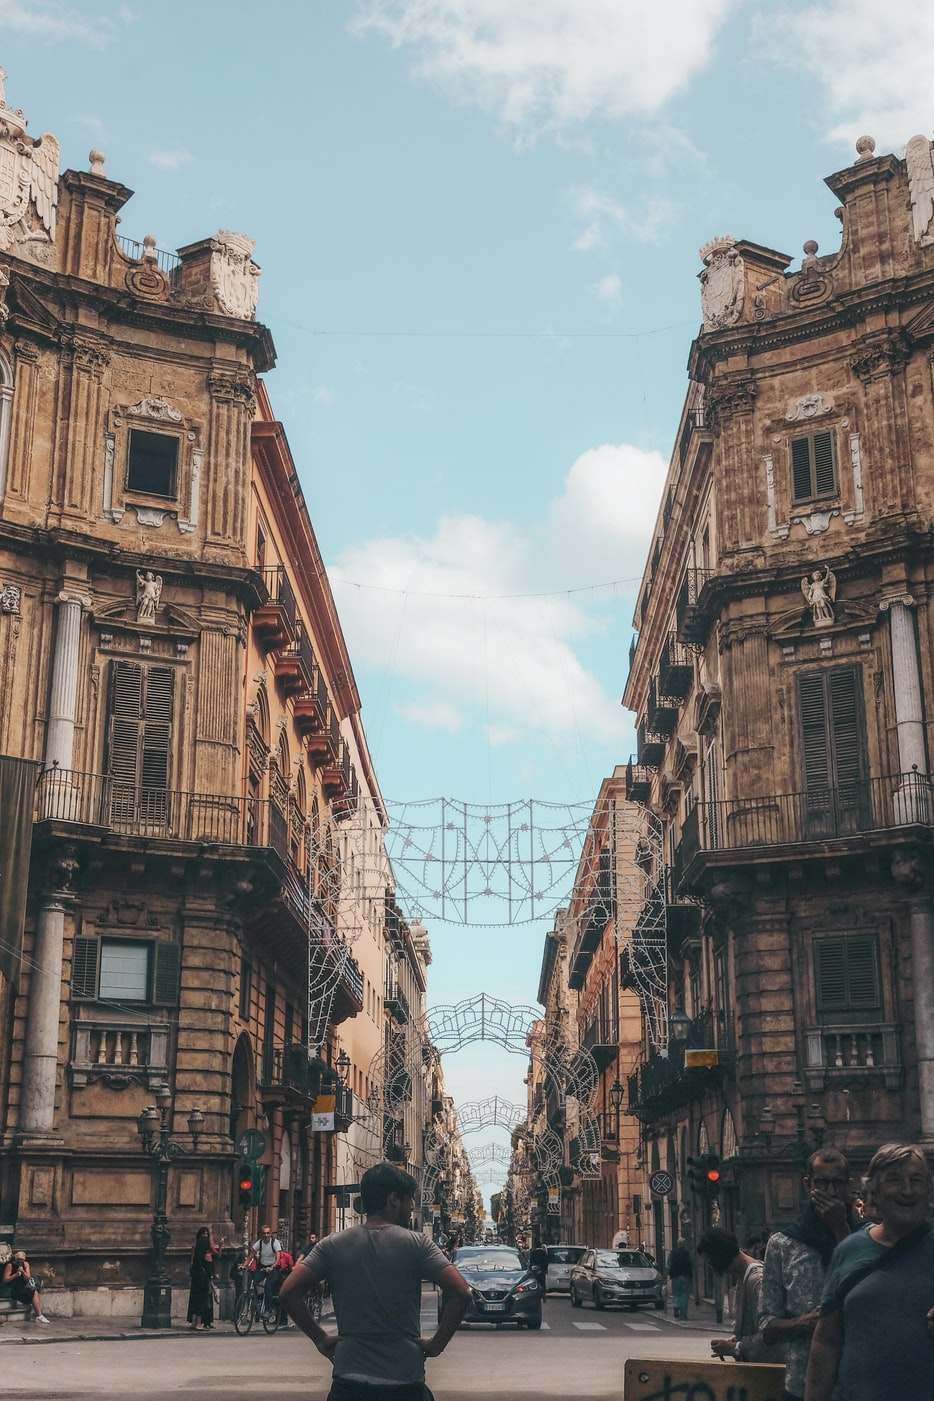 a street lined with buildings in Palermo, Italy